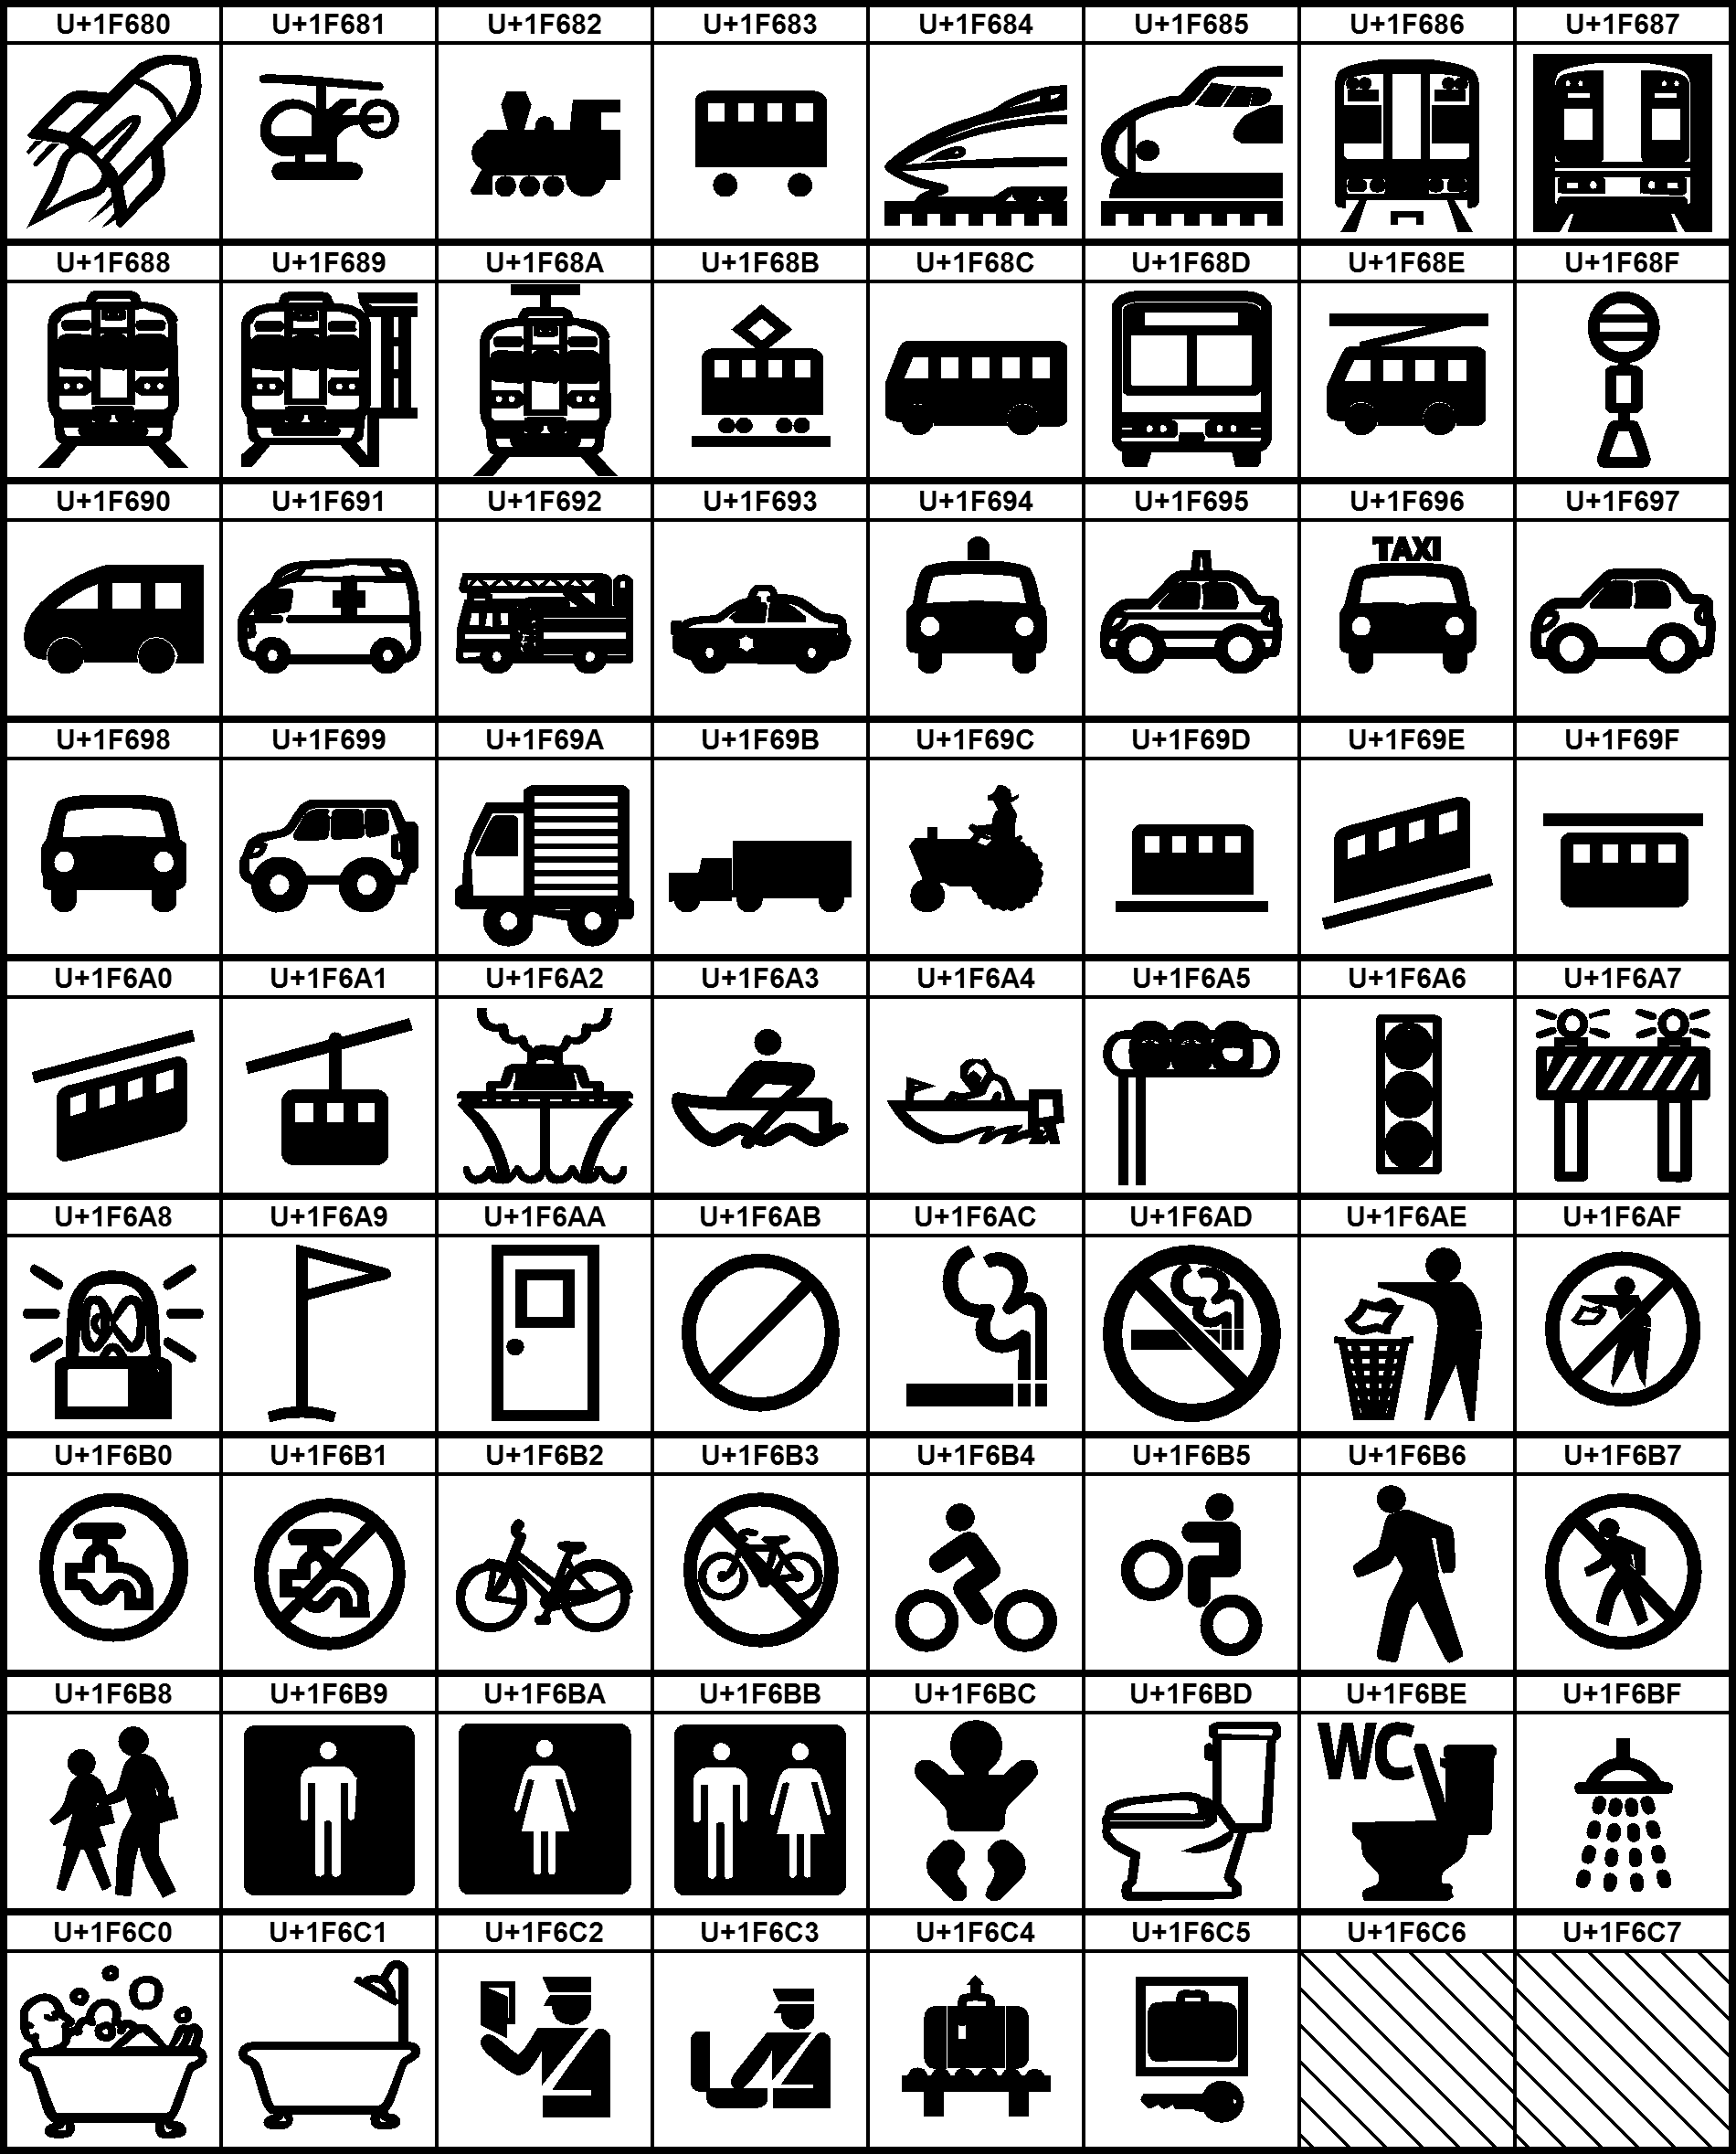 Fileucb Transport And Map Symbols Largeg Wikimedia Commons